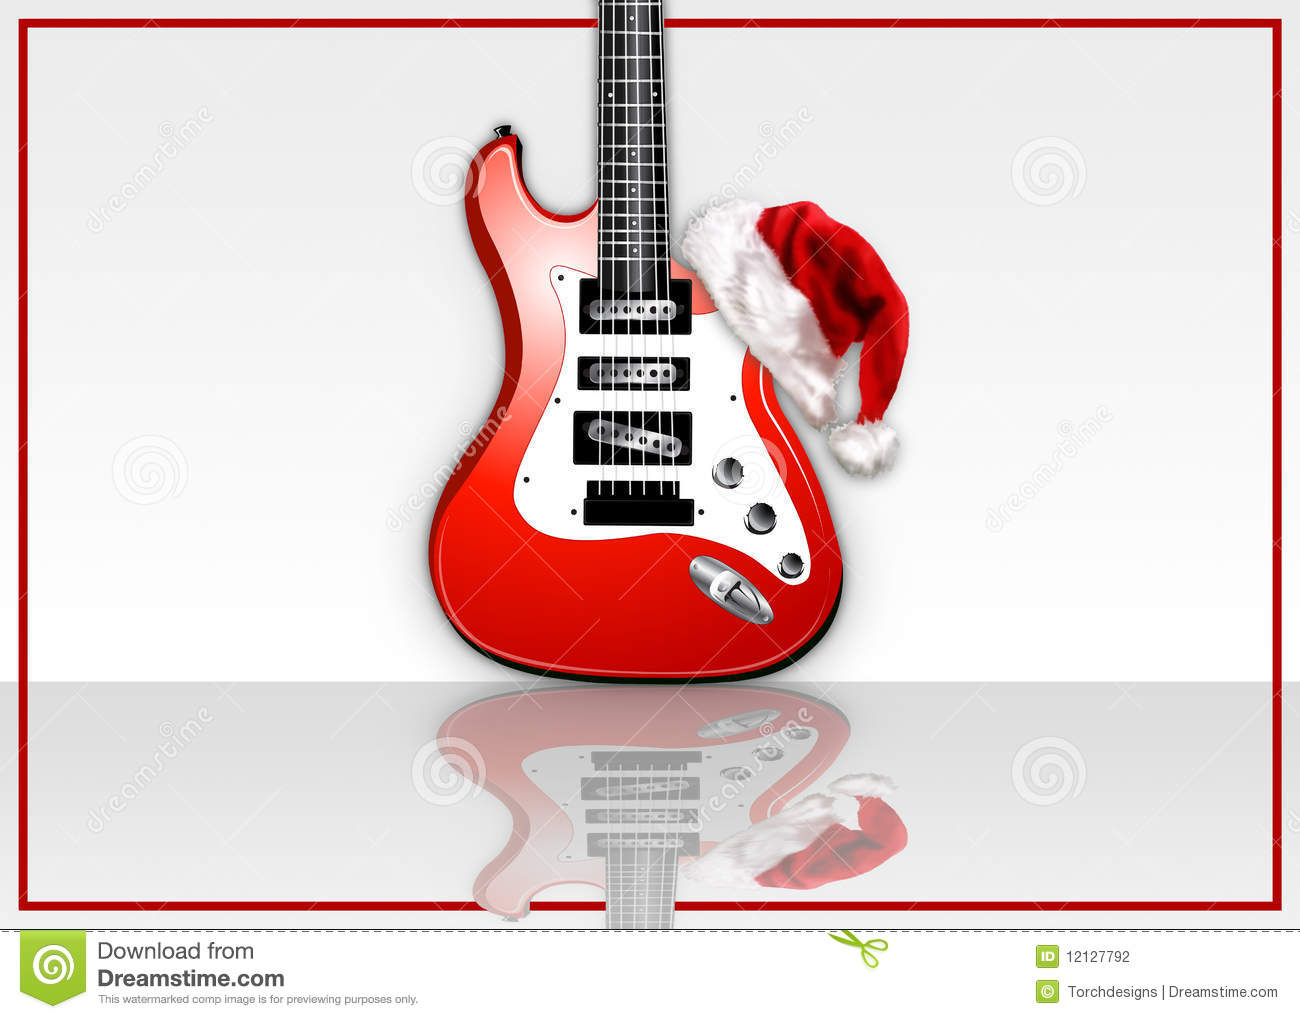 Snowman clipart rock and roll Guitar art Cliparts Download Free